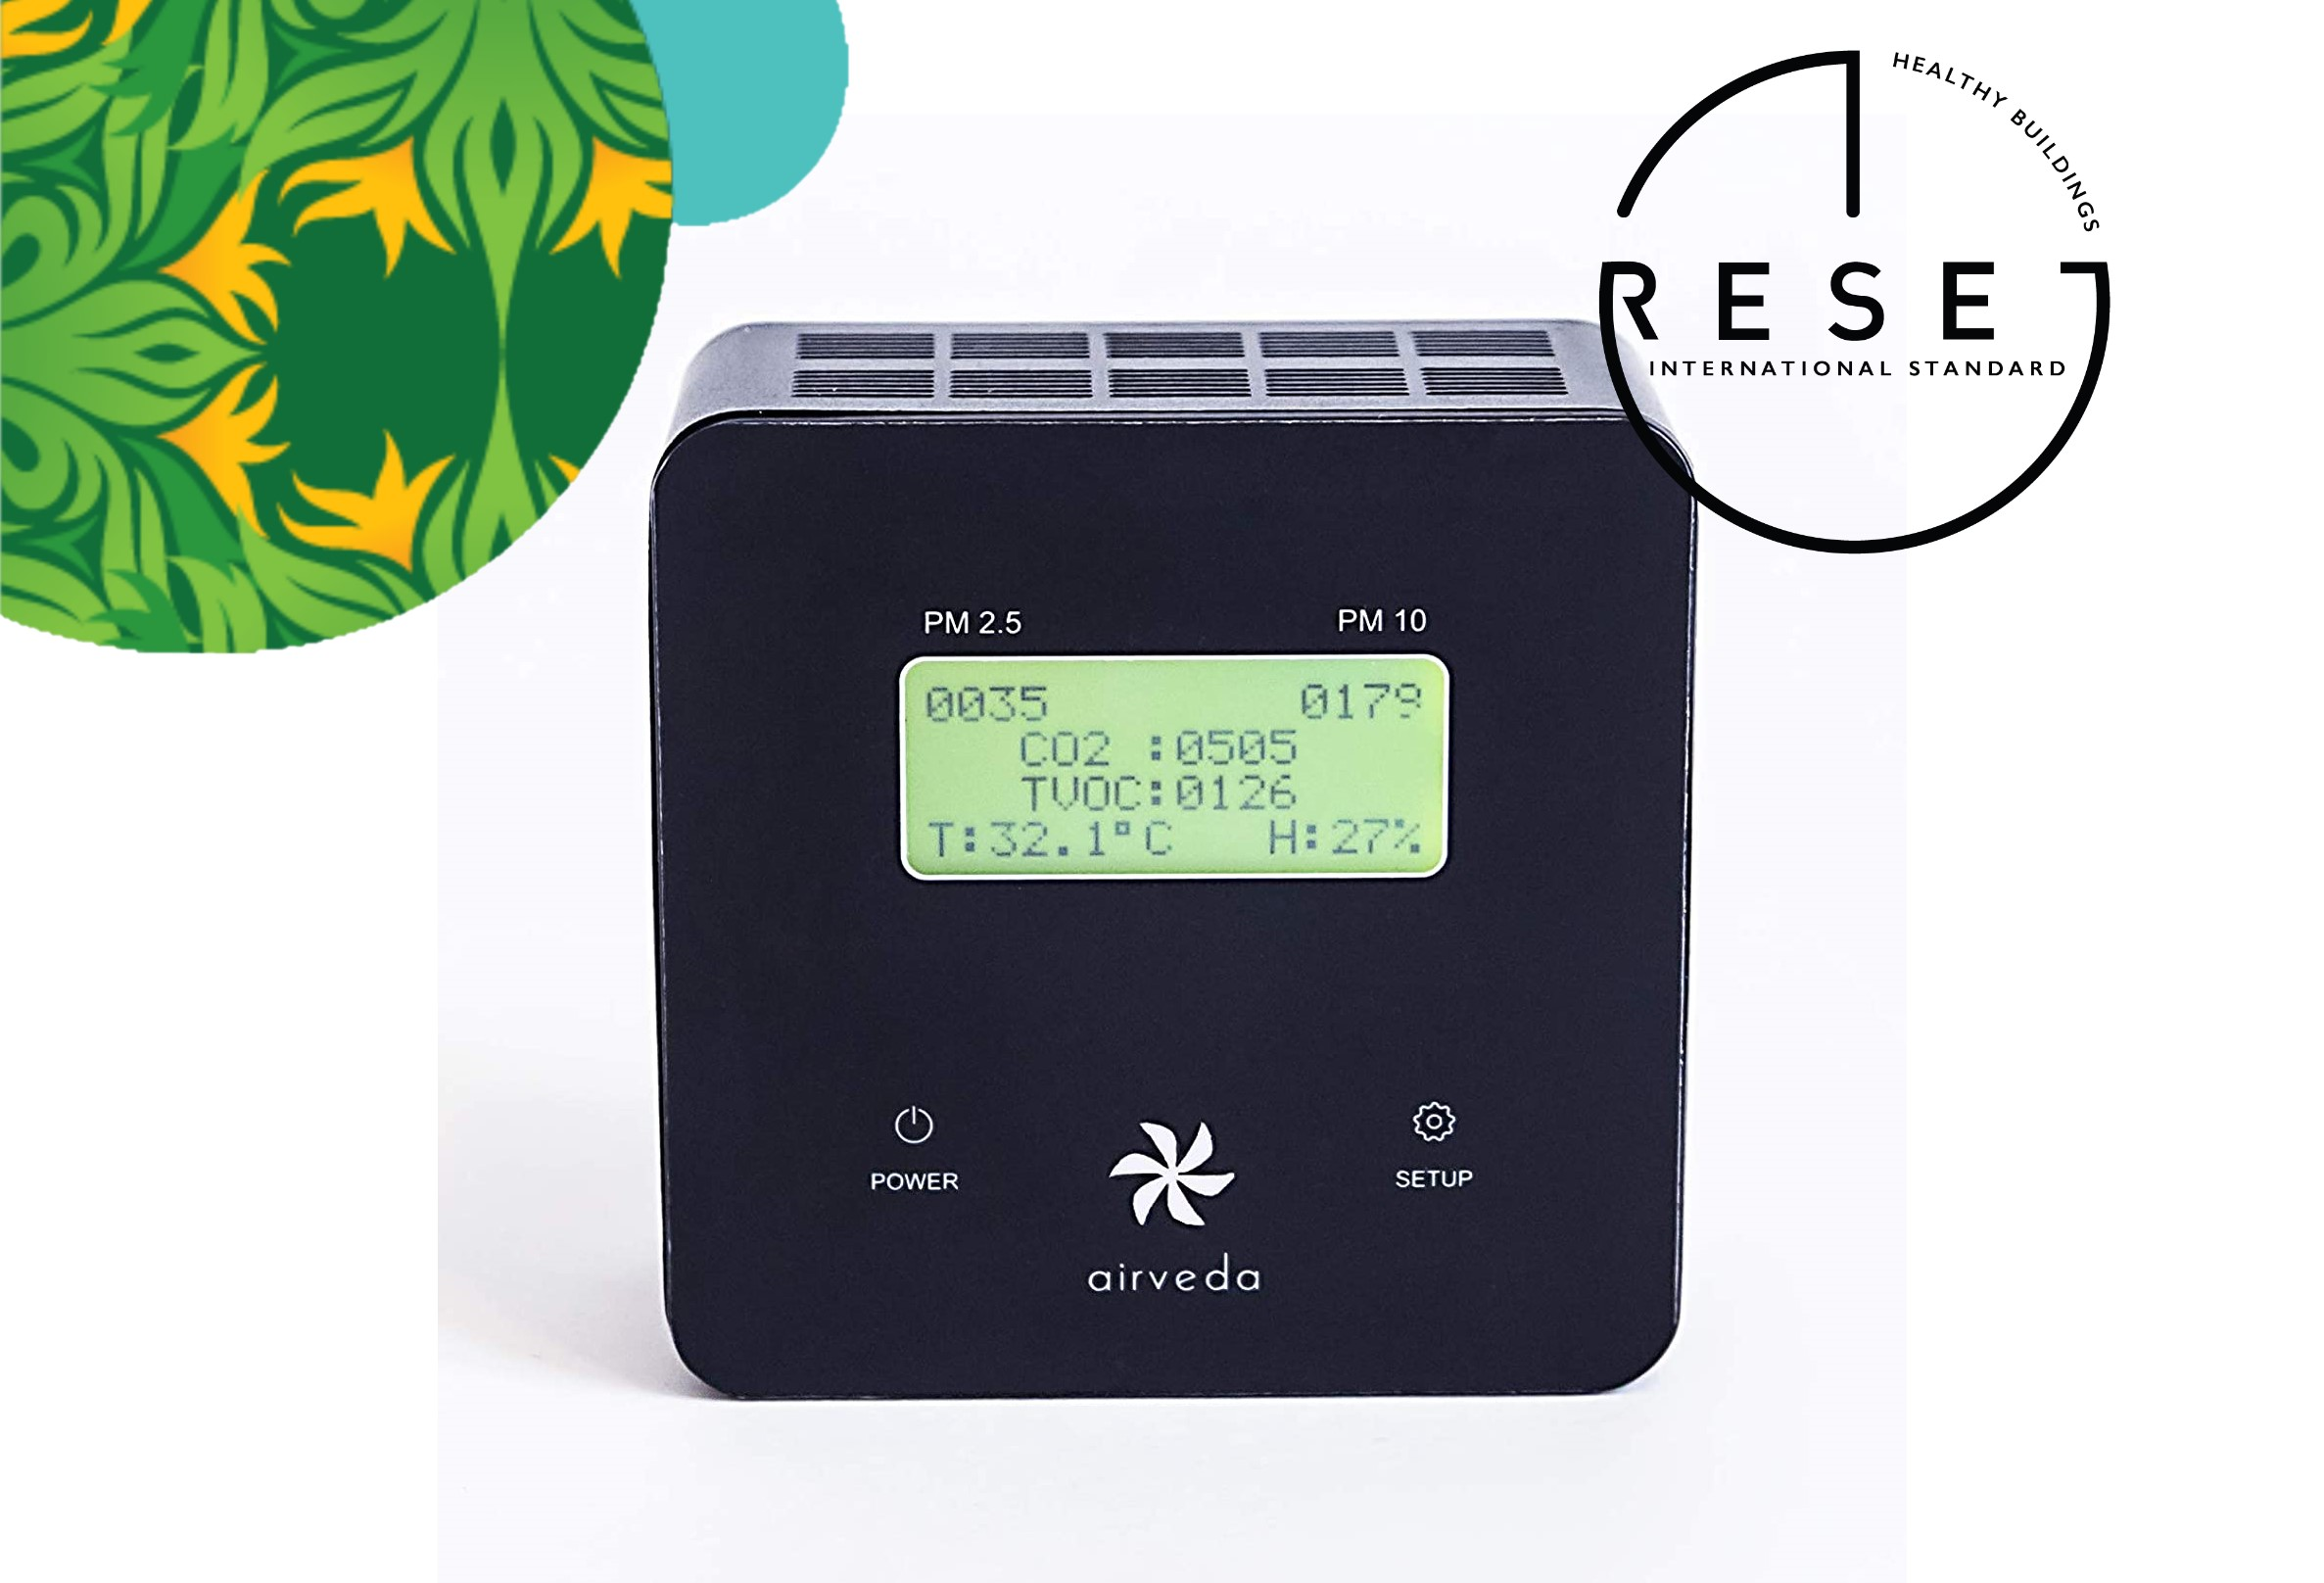 RESET certified Airveda PM2.5, PM10, CO2, TVOC, Temp, Humidity Monitor